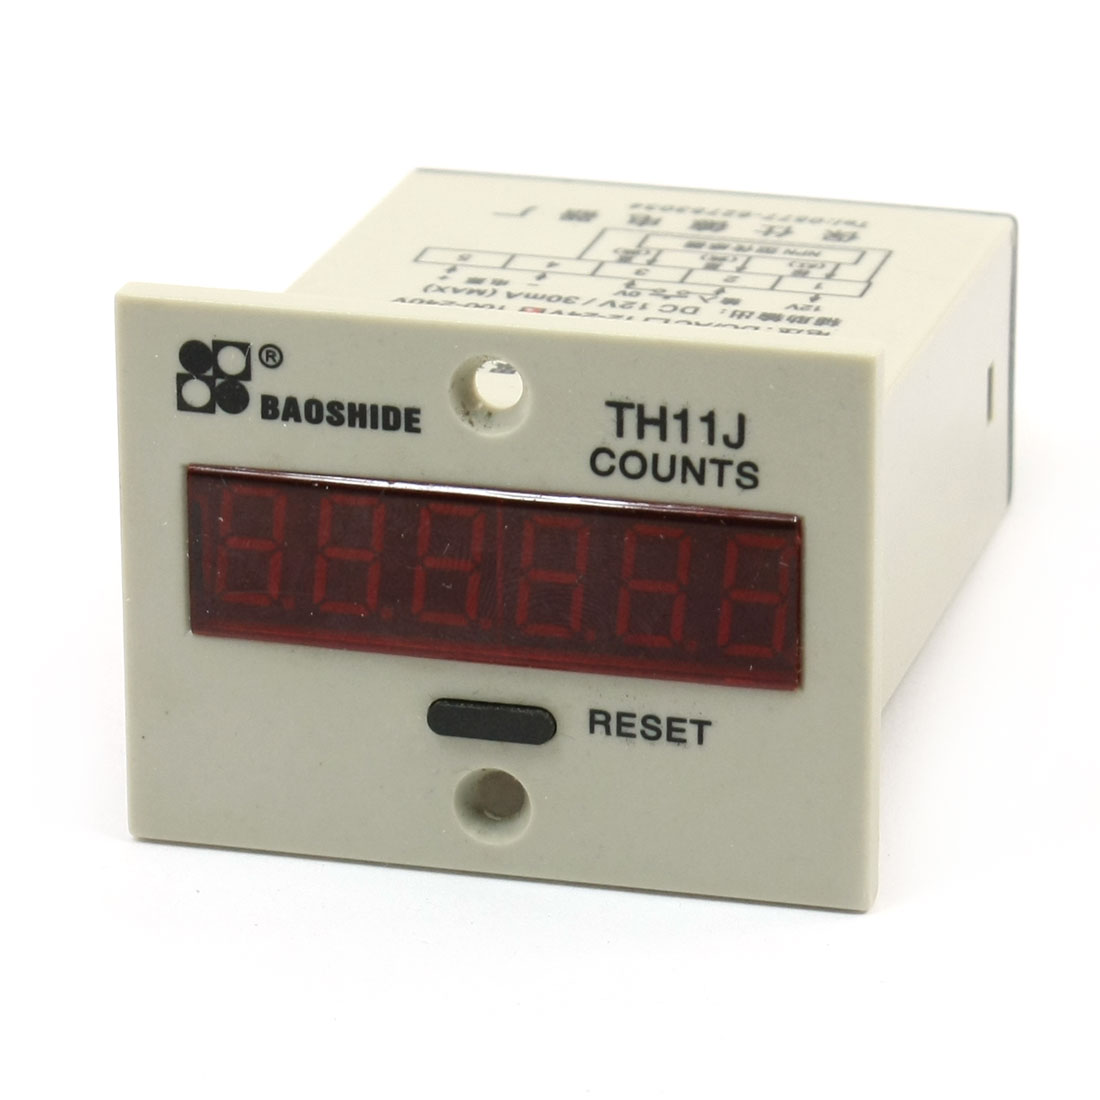 220VAC No-Voltage Input DC12V Output 6 Digits Accumulating Counter TH11J-L